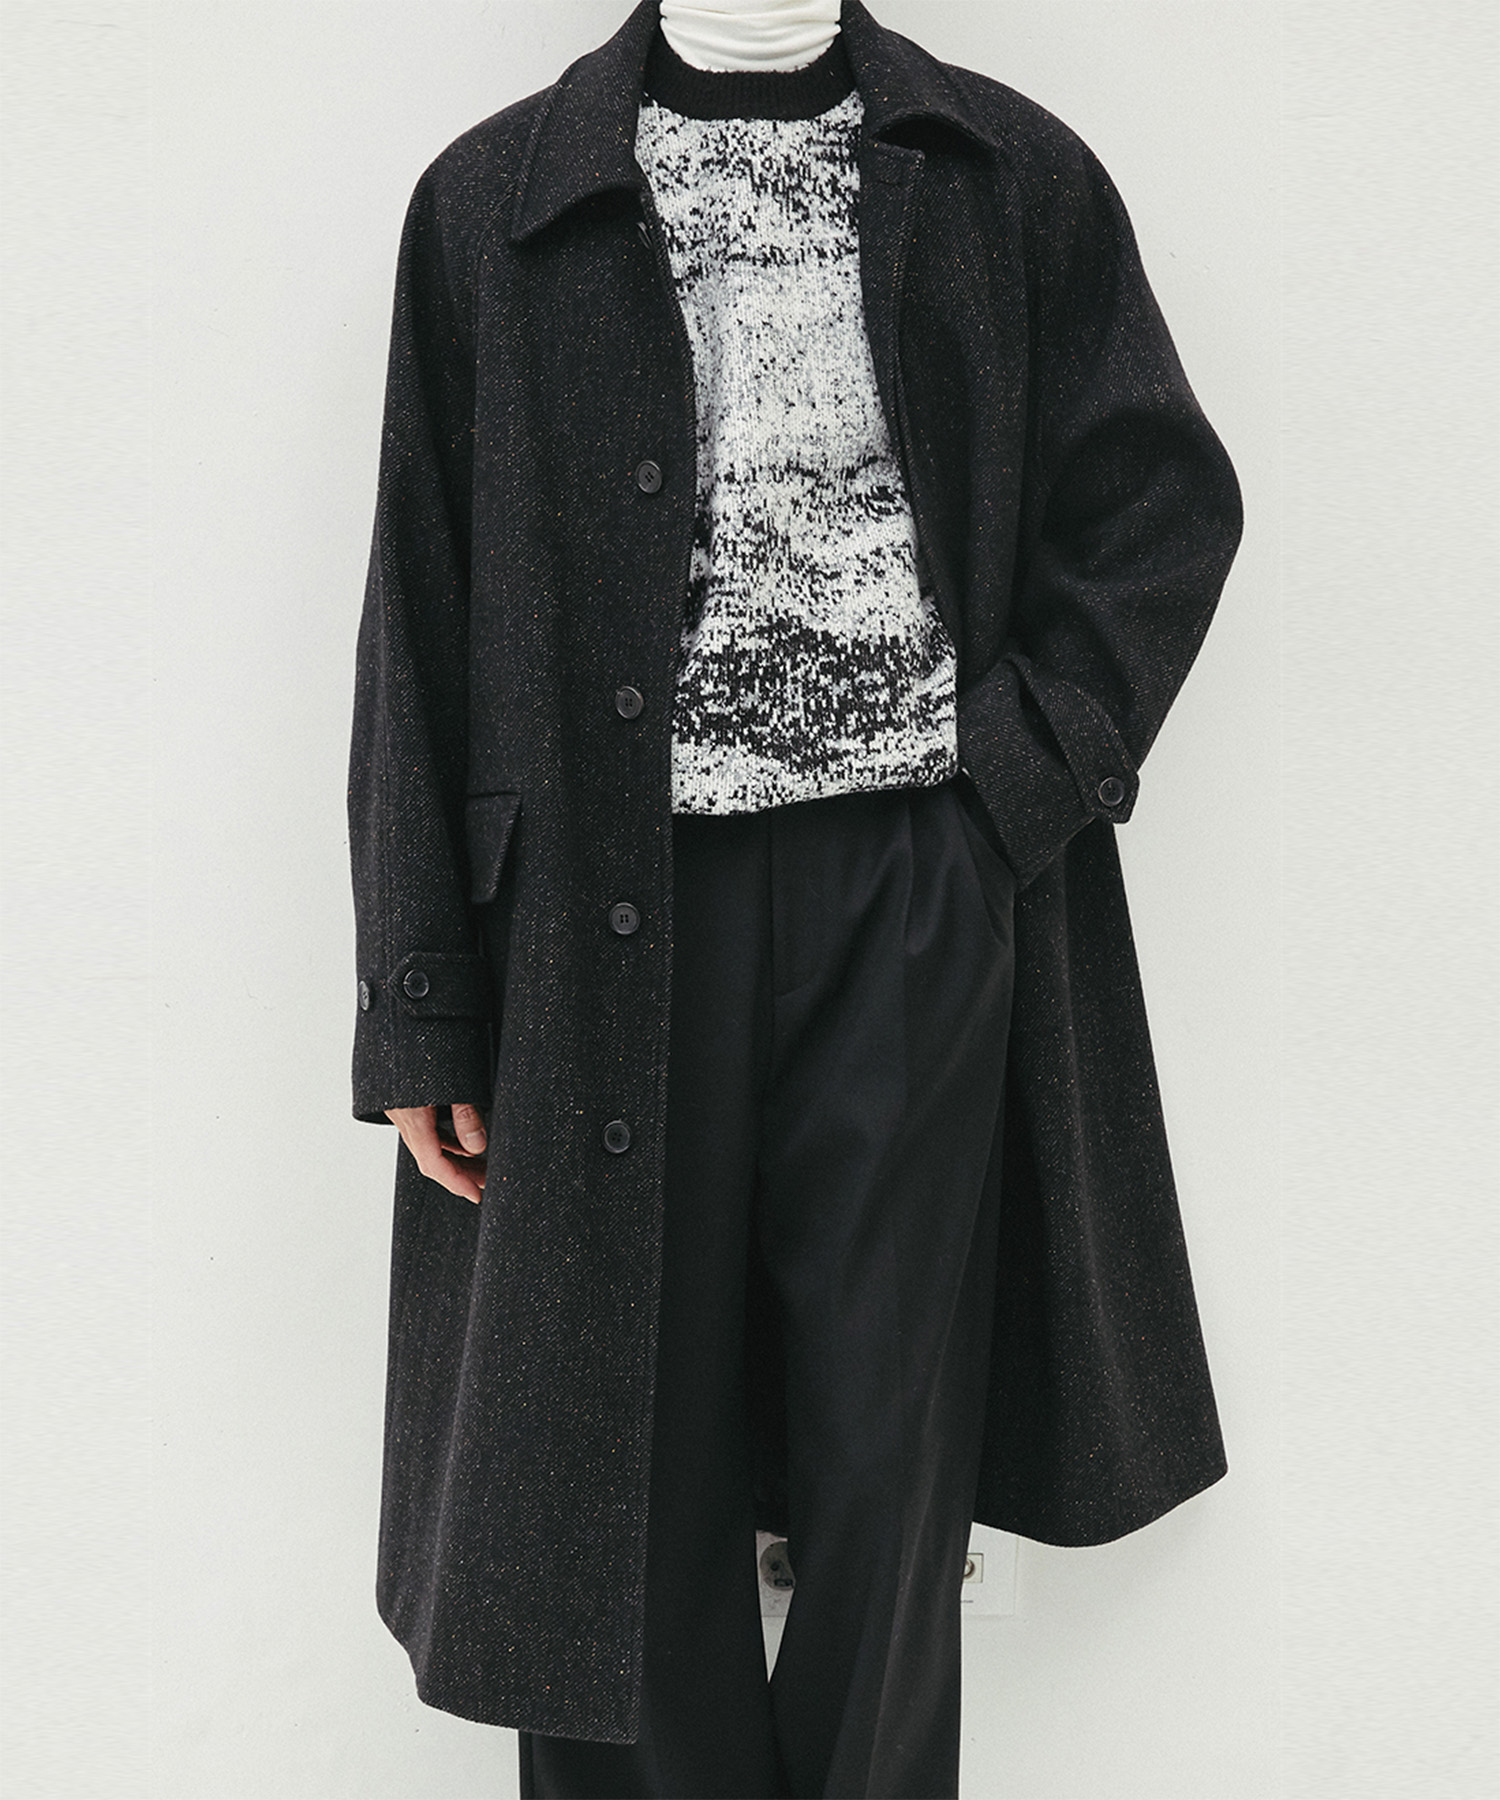 HALEINE알렌느 BLACK neff wool wool 3D detail balmacancoat(MJ705)